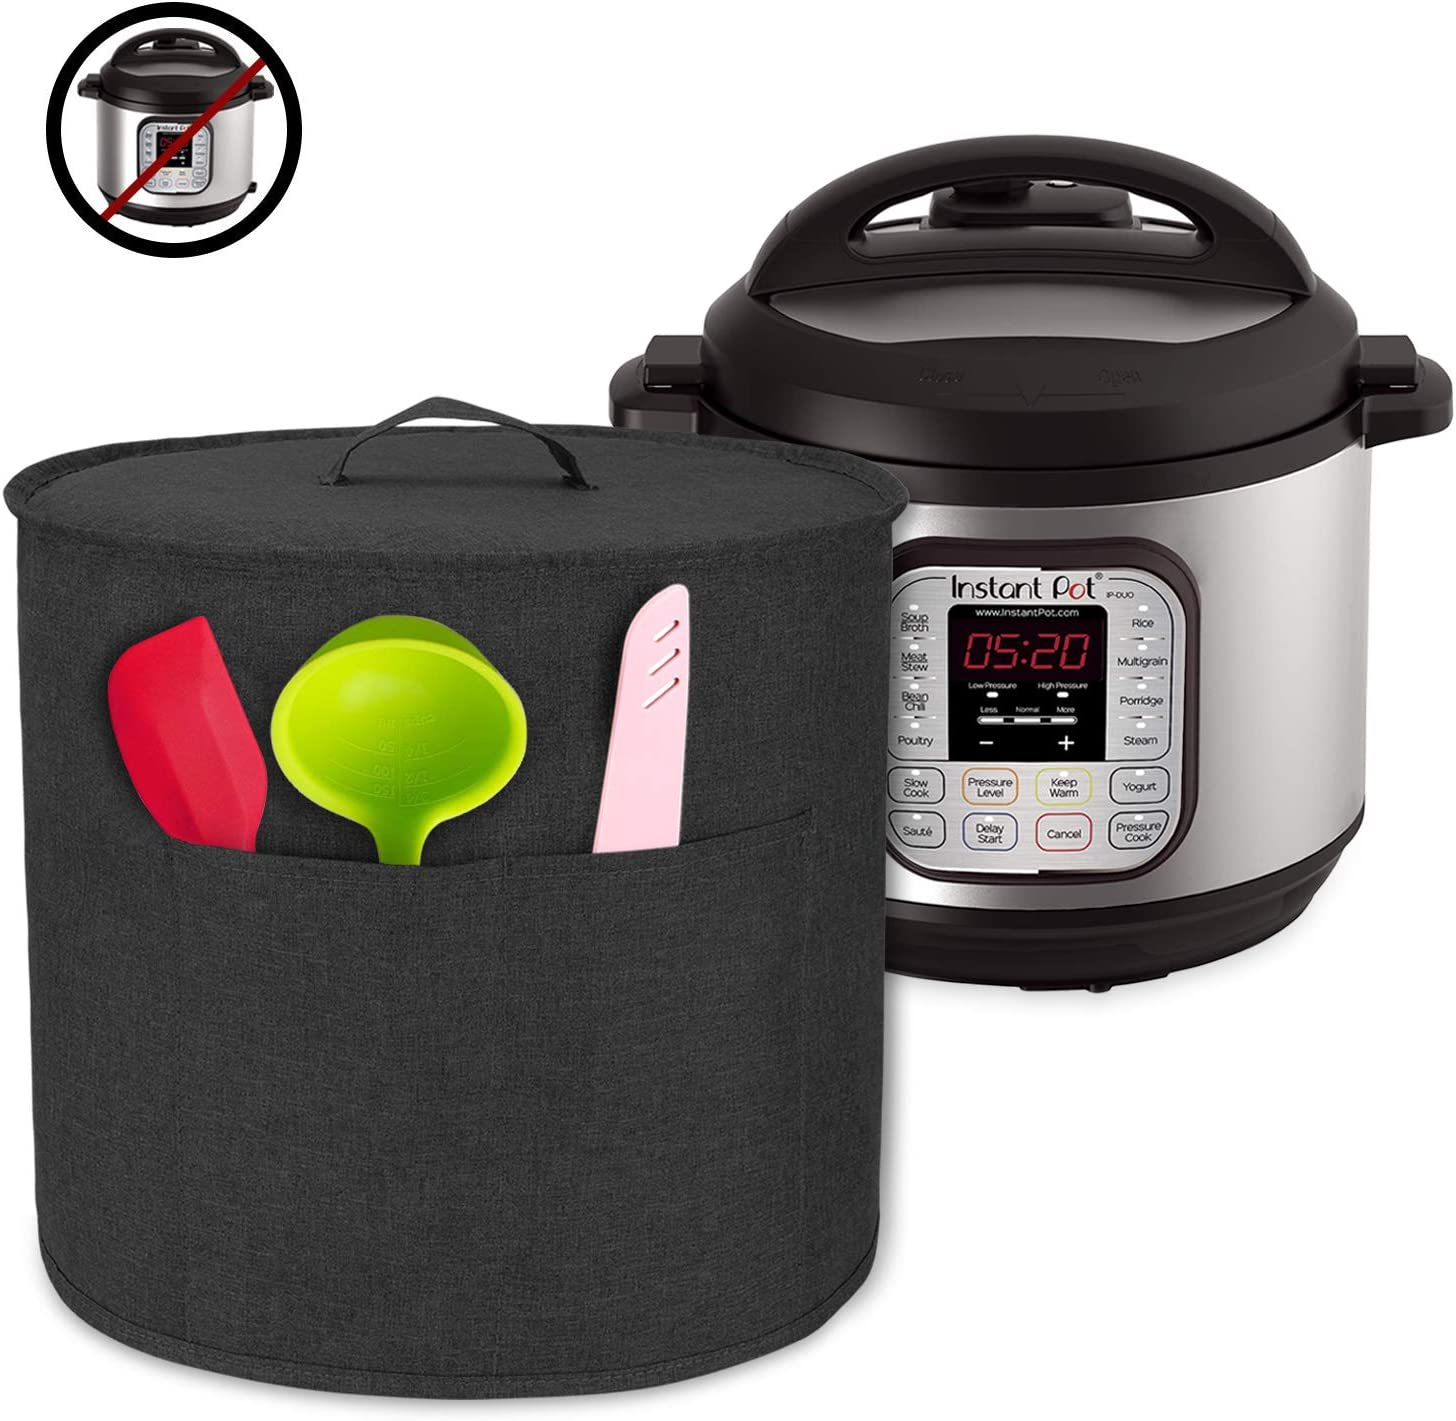 Luxja Dust Cover for 6 Quart Instant Pot, Cloth Cover with Pockets for Instant Pot (6 Quart) and Extra Accessories, Black (Medium)